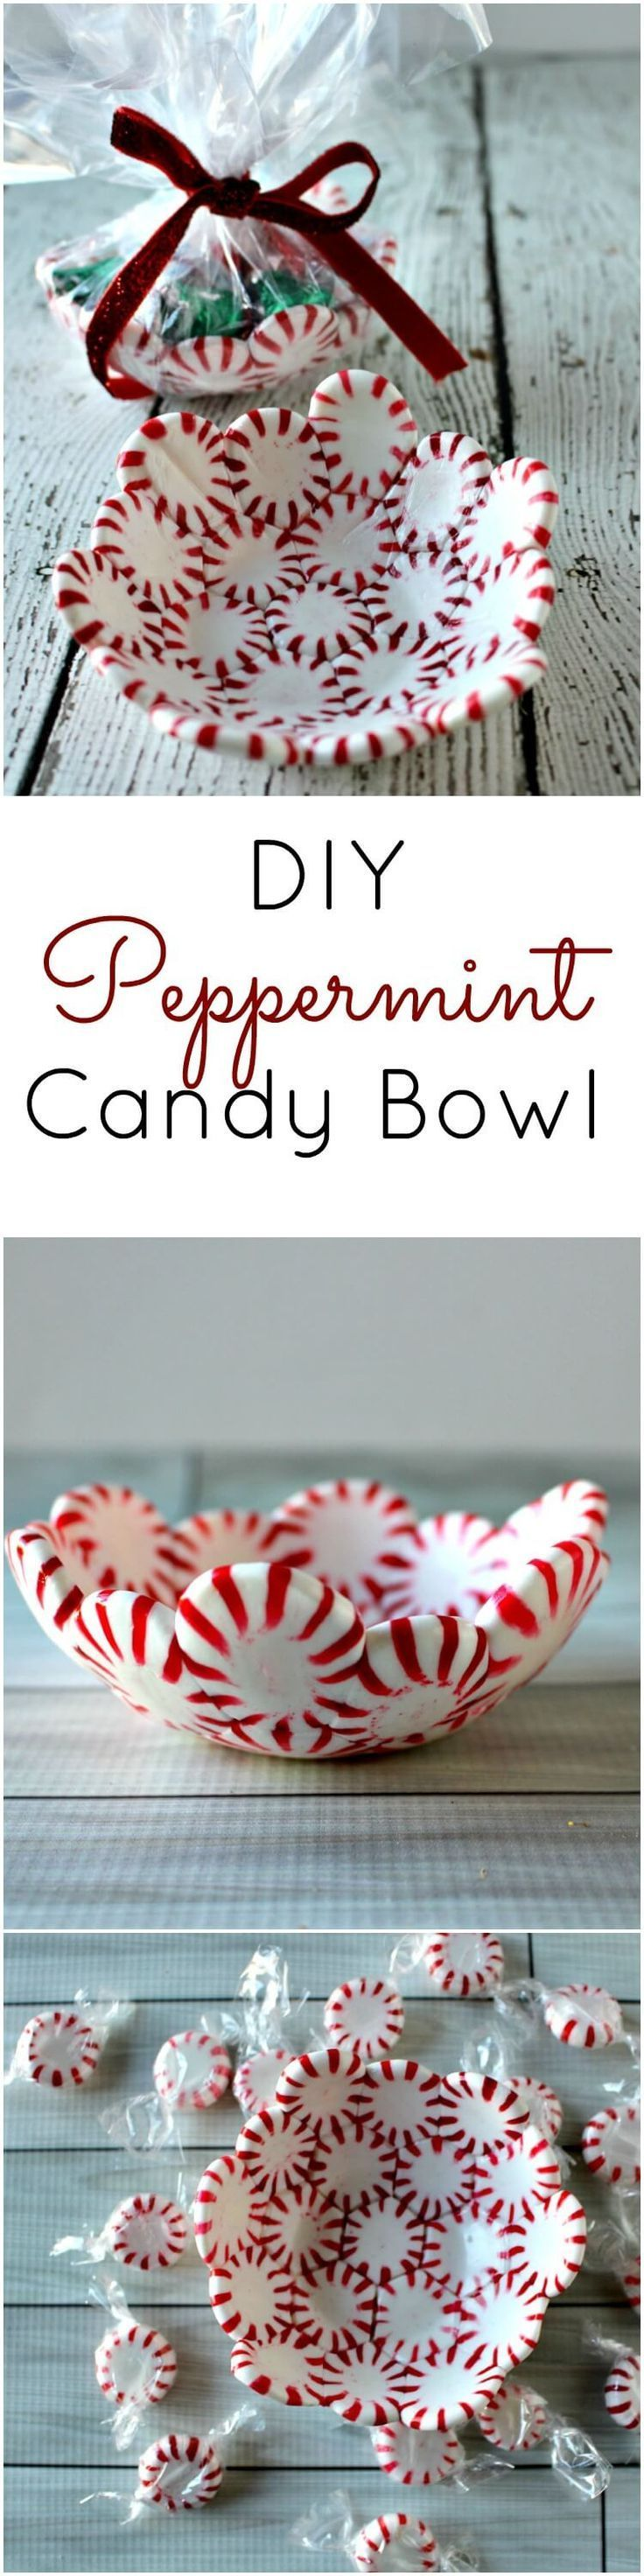 DIY Peppermint Candy Bowl - The perfect (and easiest) DIY Christmas Gift #diygift #holidaygift #candybowl #peppermint #peppermintcandybowl #peppermintbowl #christmas #christmasgift #easydiygift #teachergift #easyteachergift #diyholidaygift #diychristmasgi